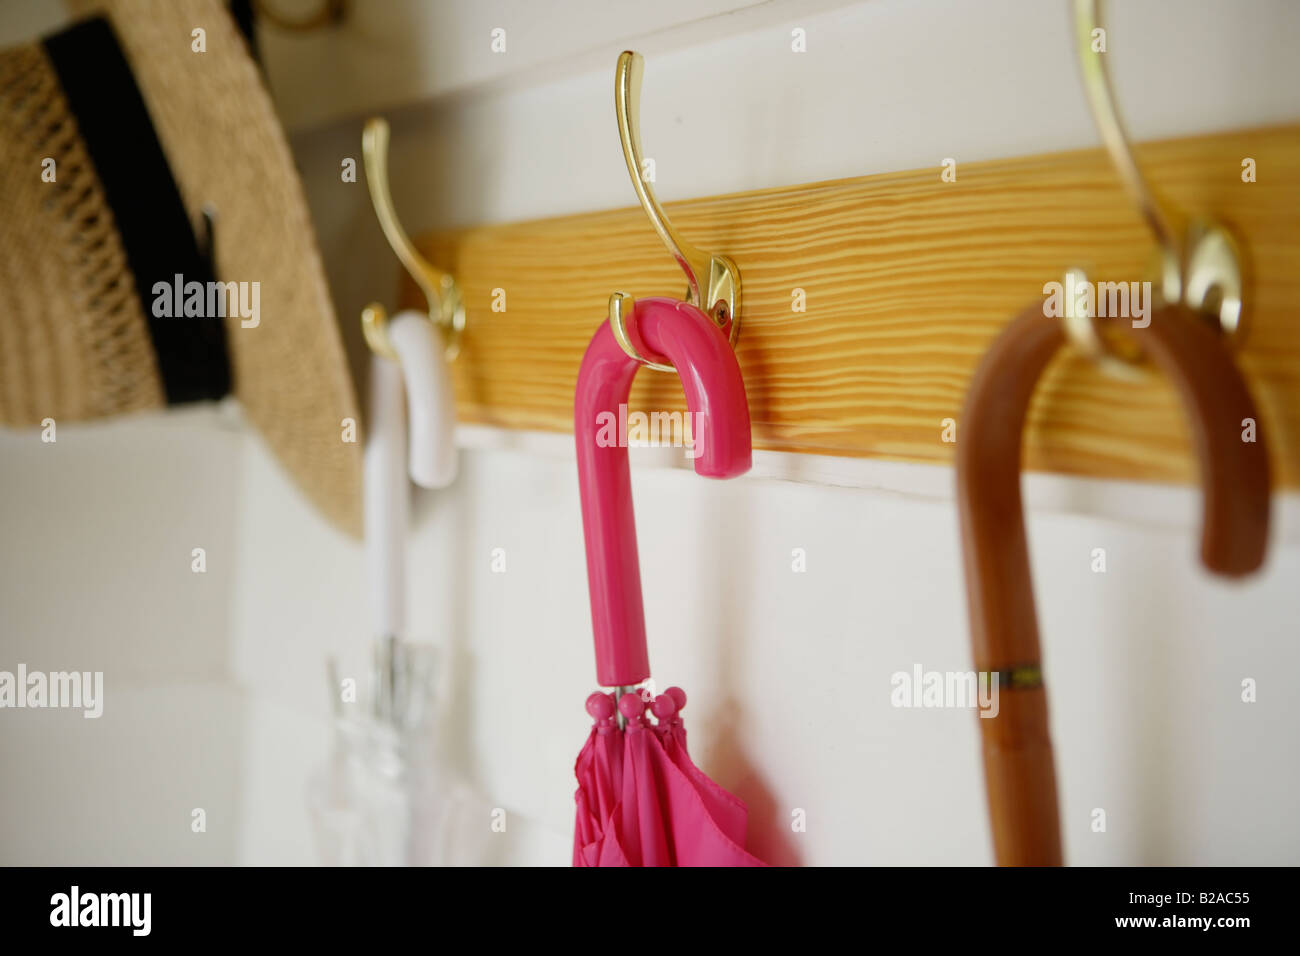 Umbrellas and straw hat hanging from coat rack - Stock Image